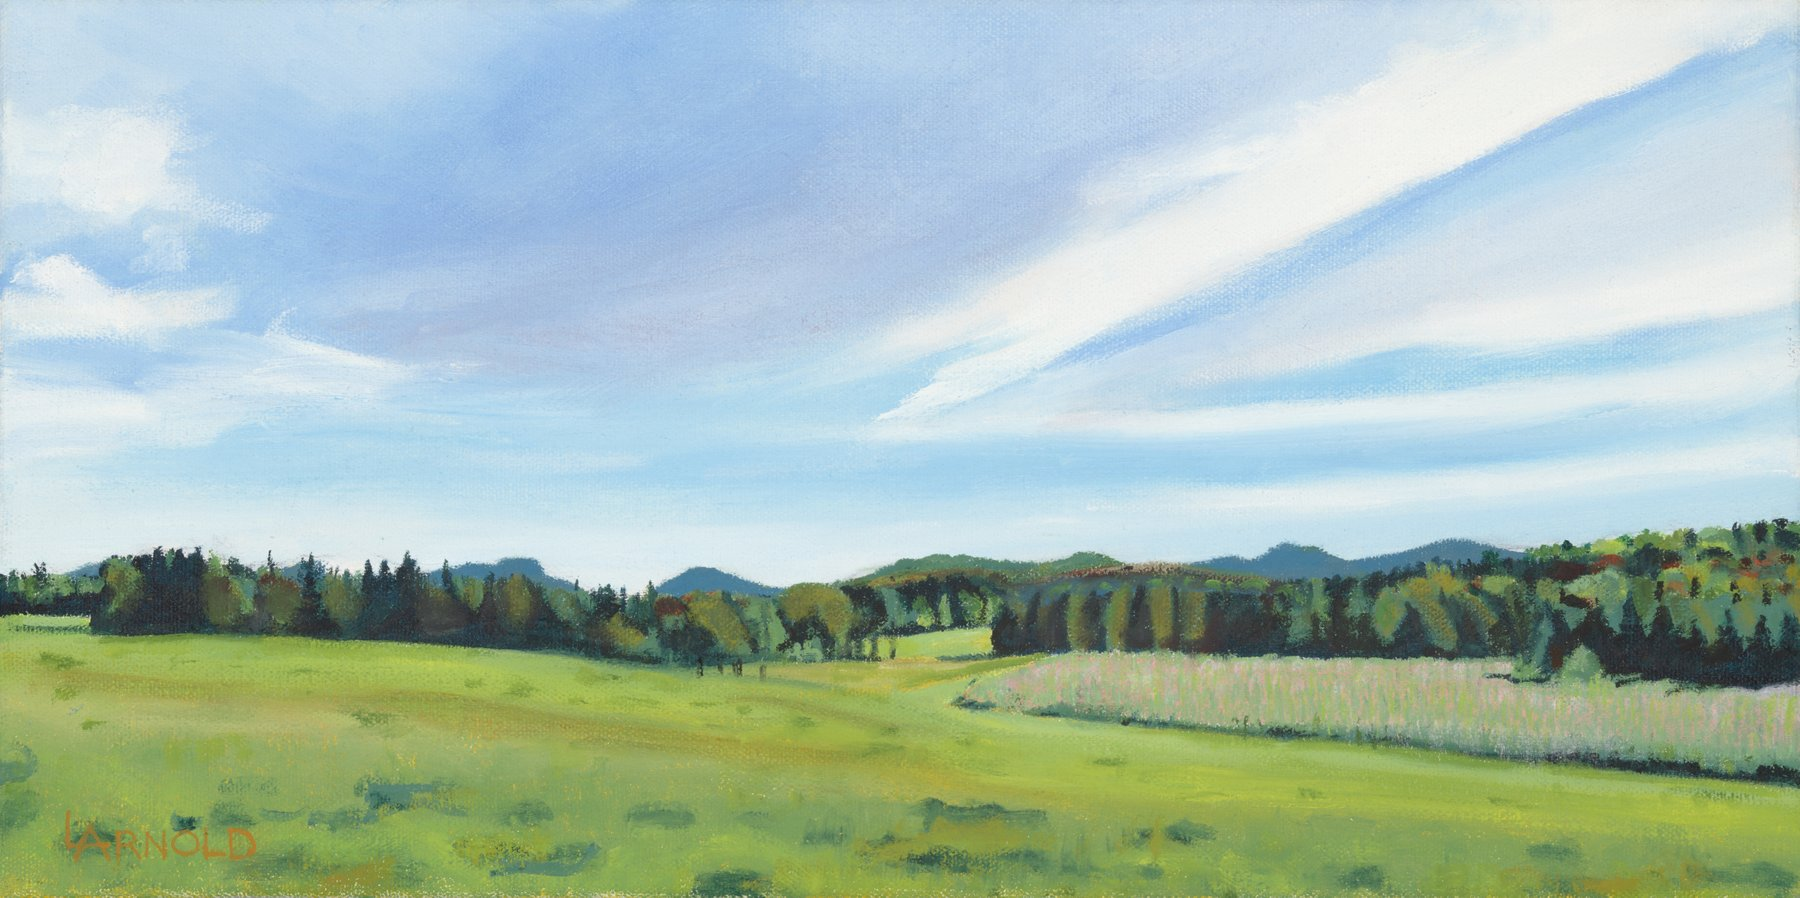 Laggis Farm Pasture, 8x16